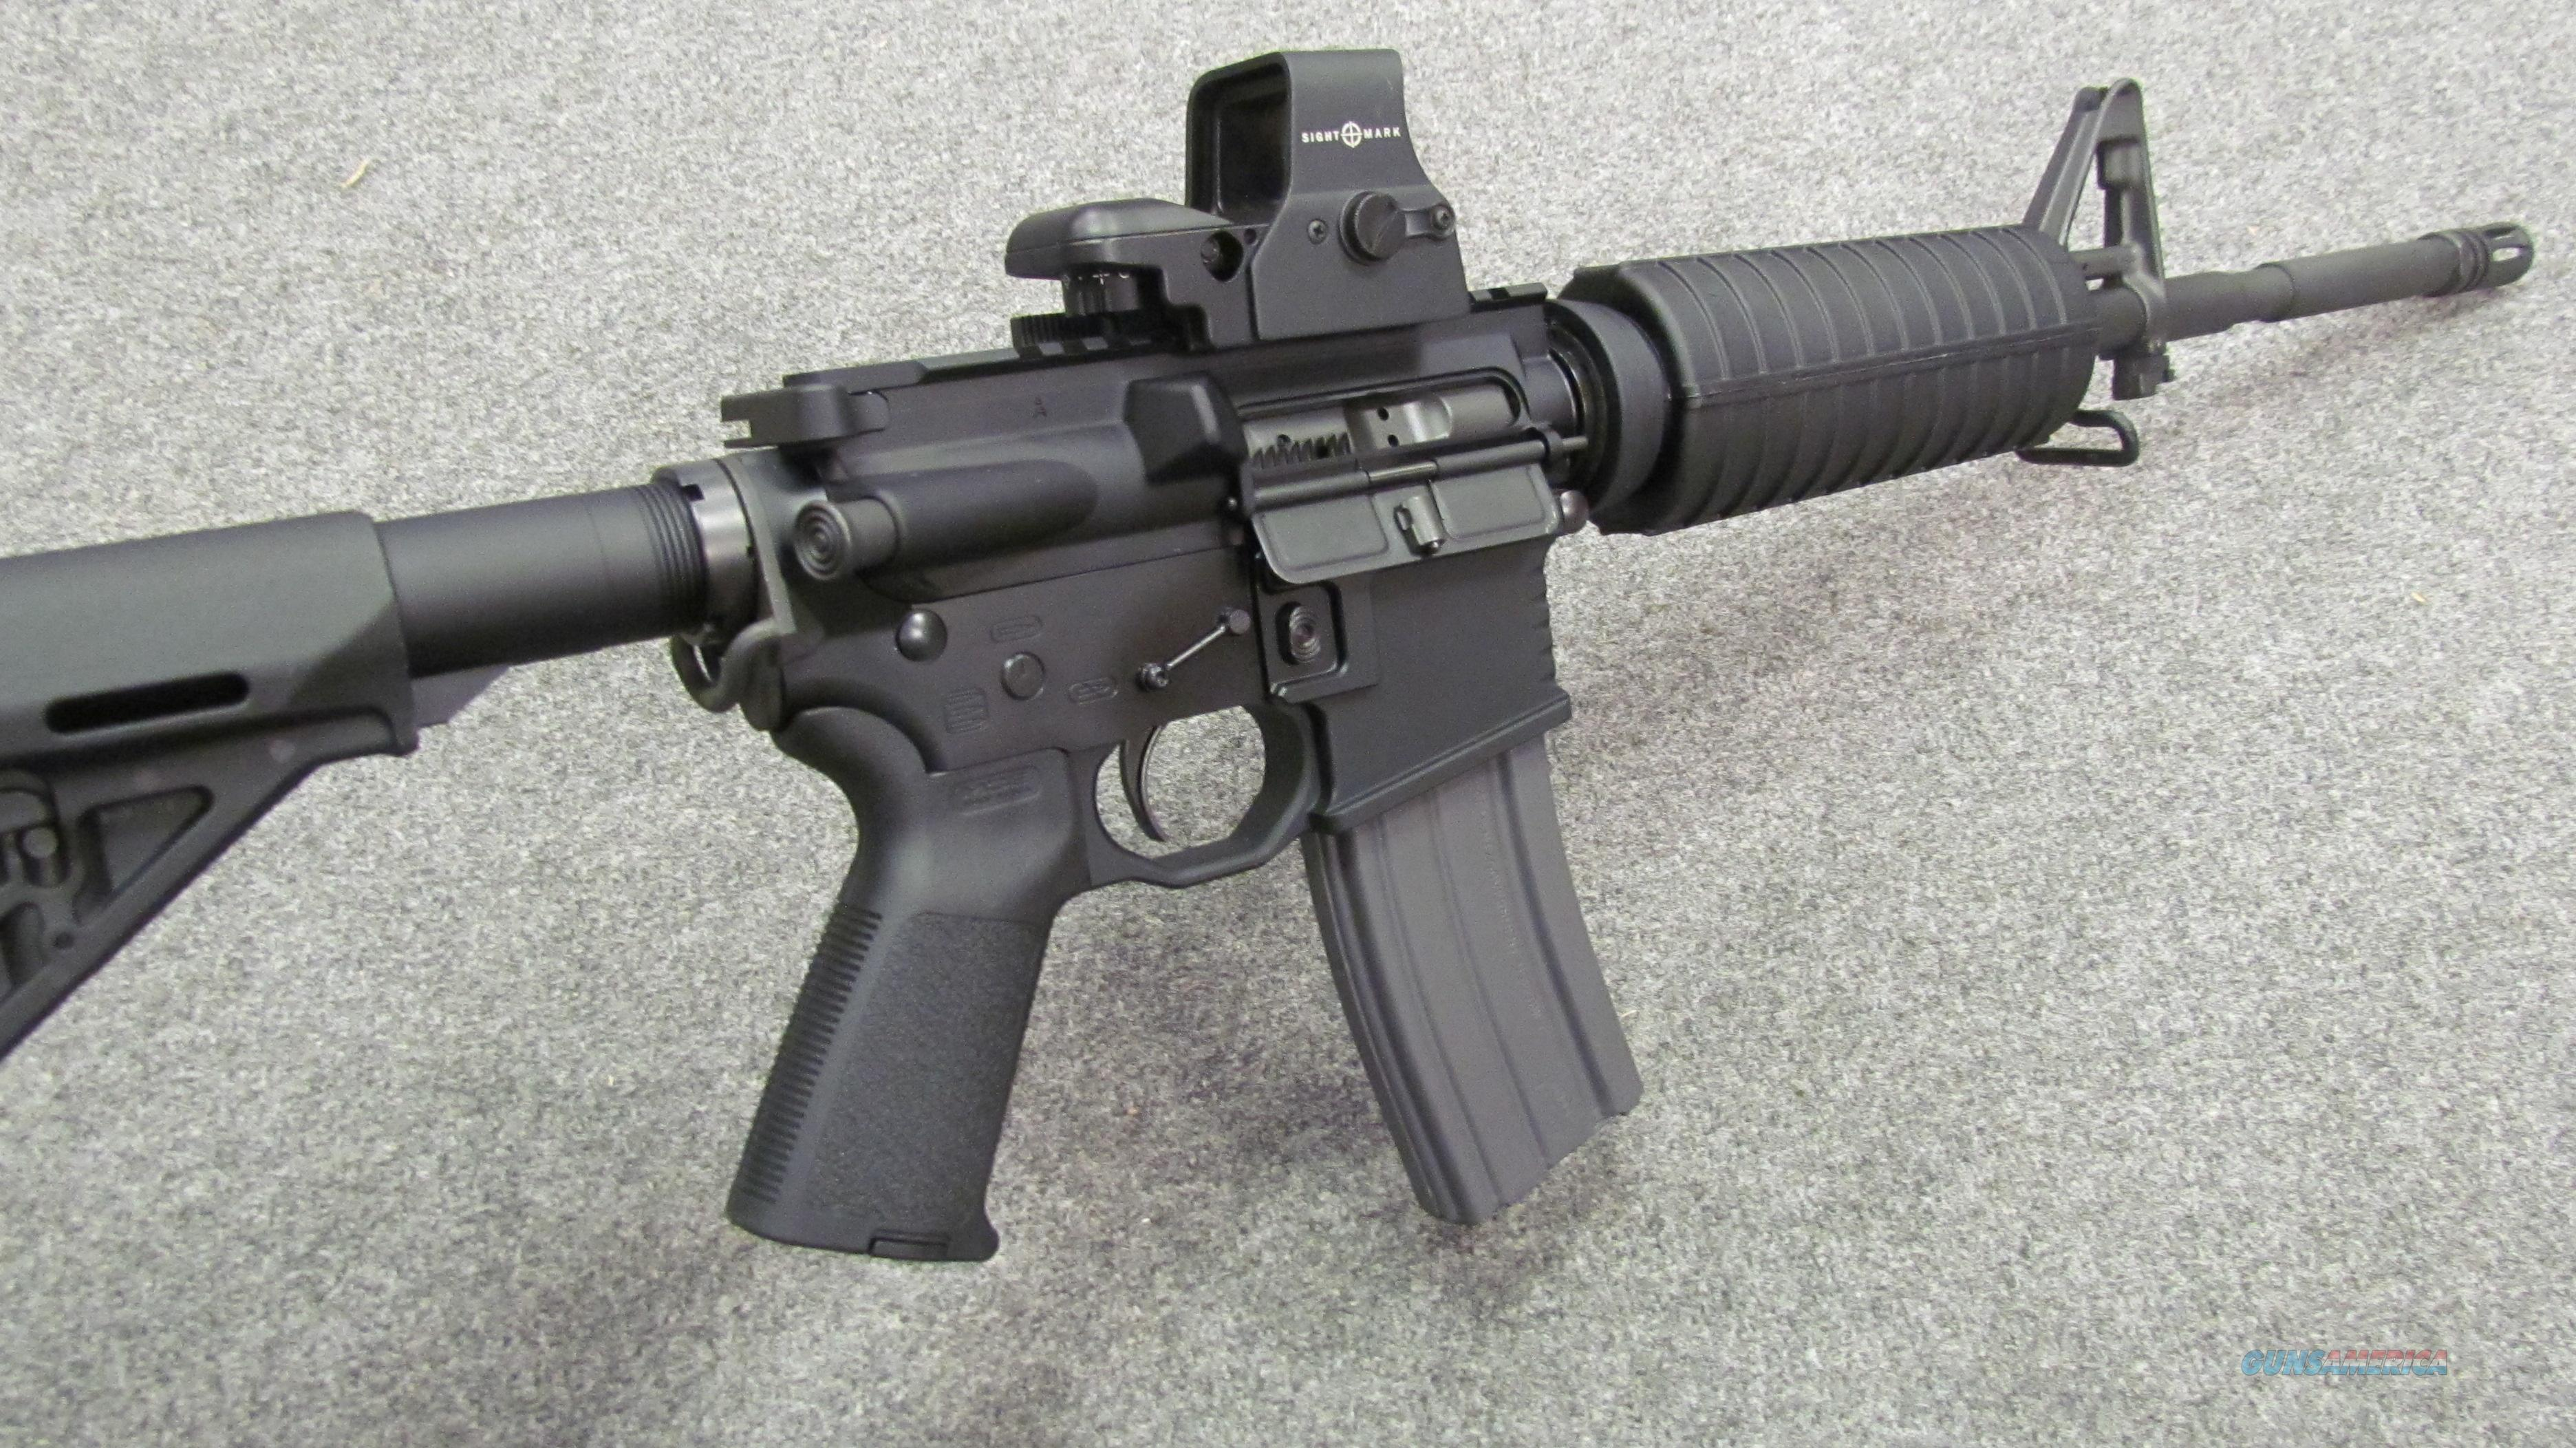 *~! CUSTOM !~*  New! BLACK RAIN  ORDNANCE Carbine w/ Upgrades! Xtra Mags! Cal. 223 /5.56mm NATO! MAGPUL, KNS,RED DOT sight! Light Slim handy! Free ammo!& O.B.O.!!  Guns > Rifles > AR-15 Rifles - Small Manufacturers > Complete Rifle